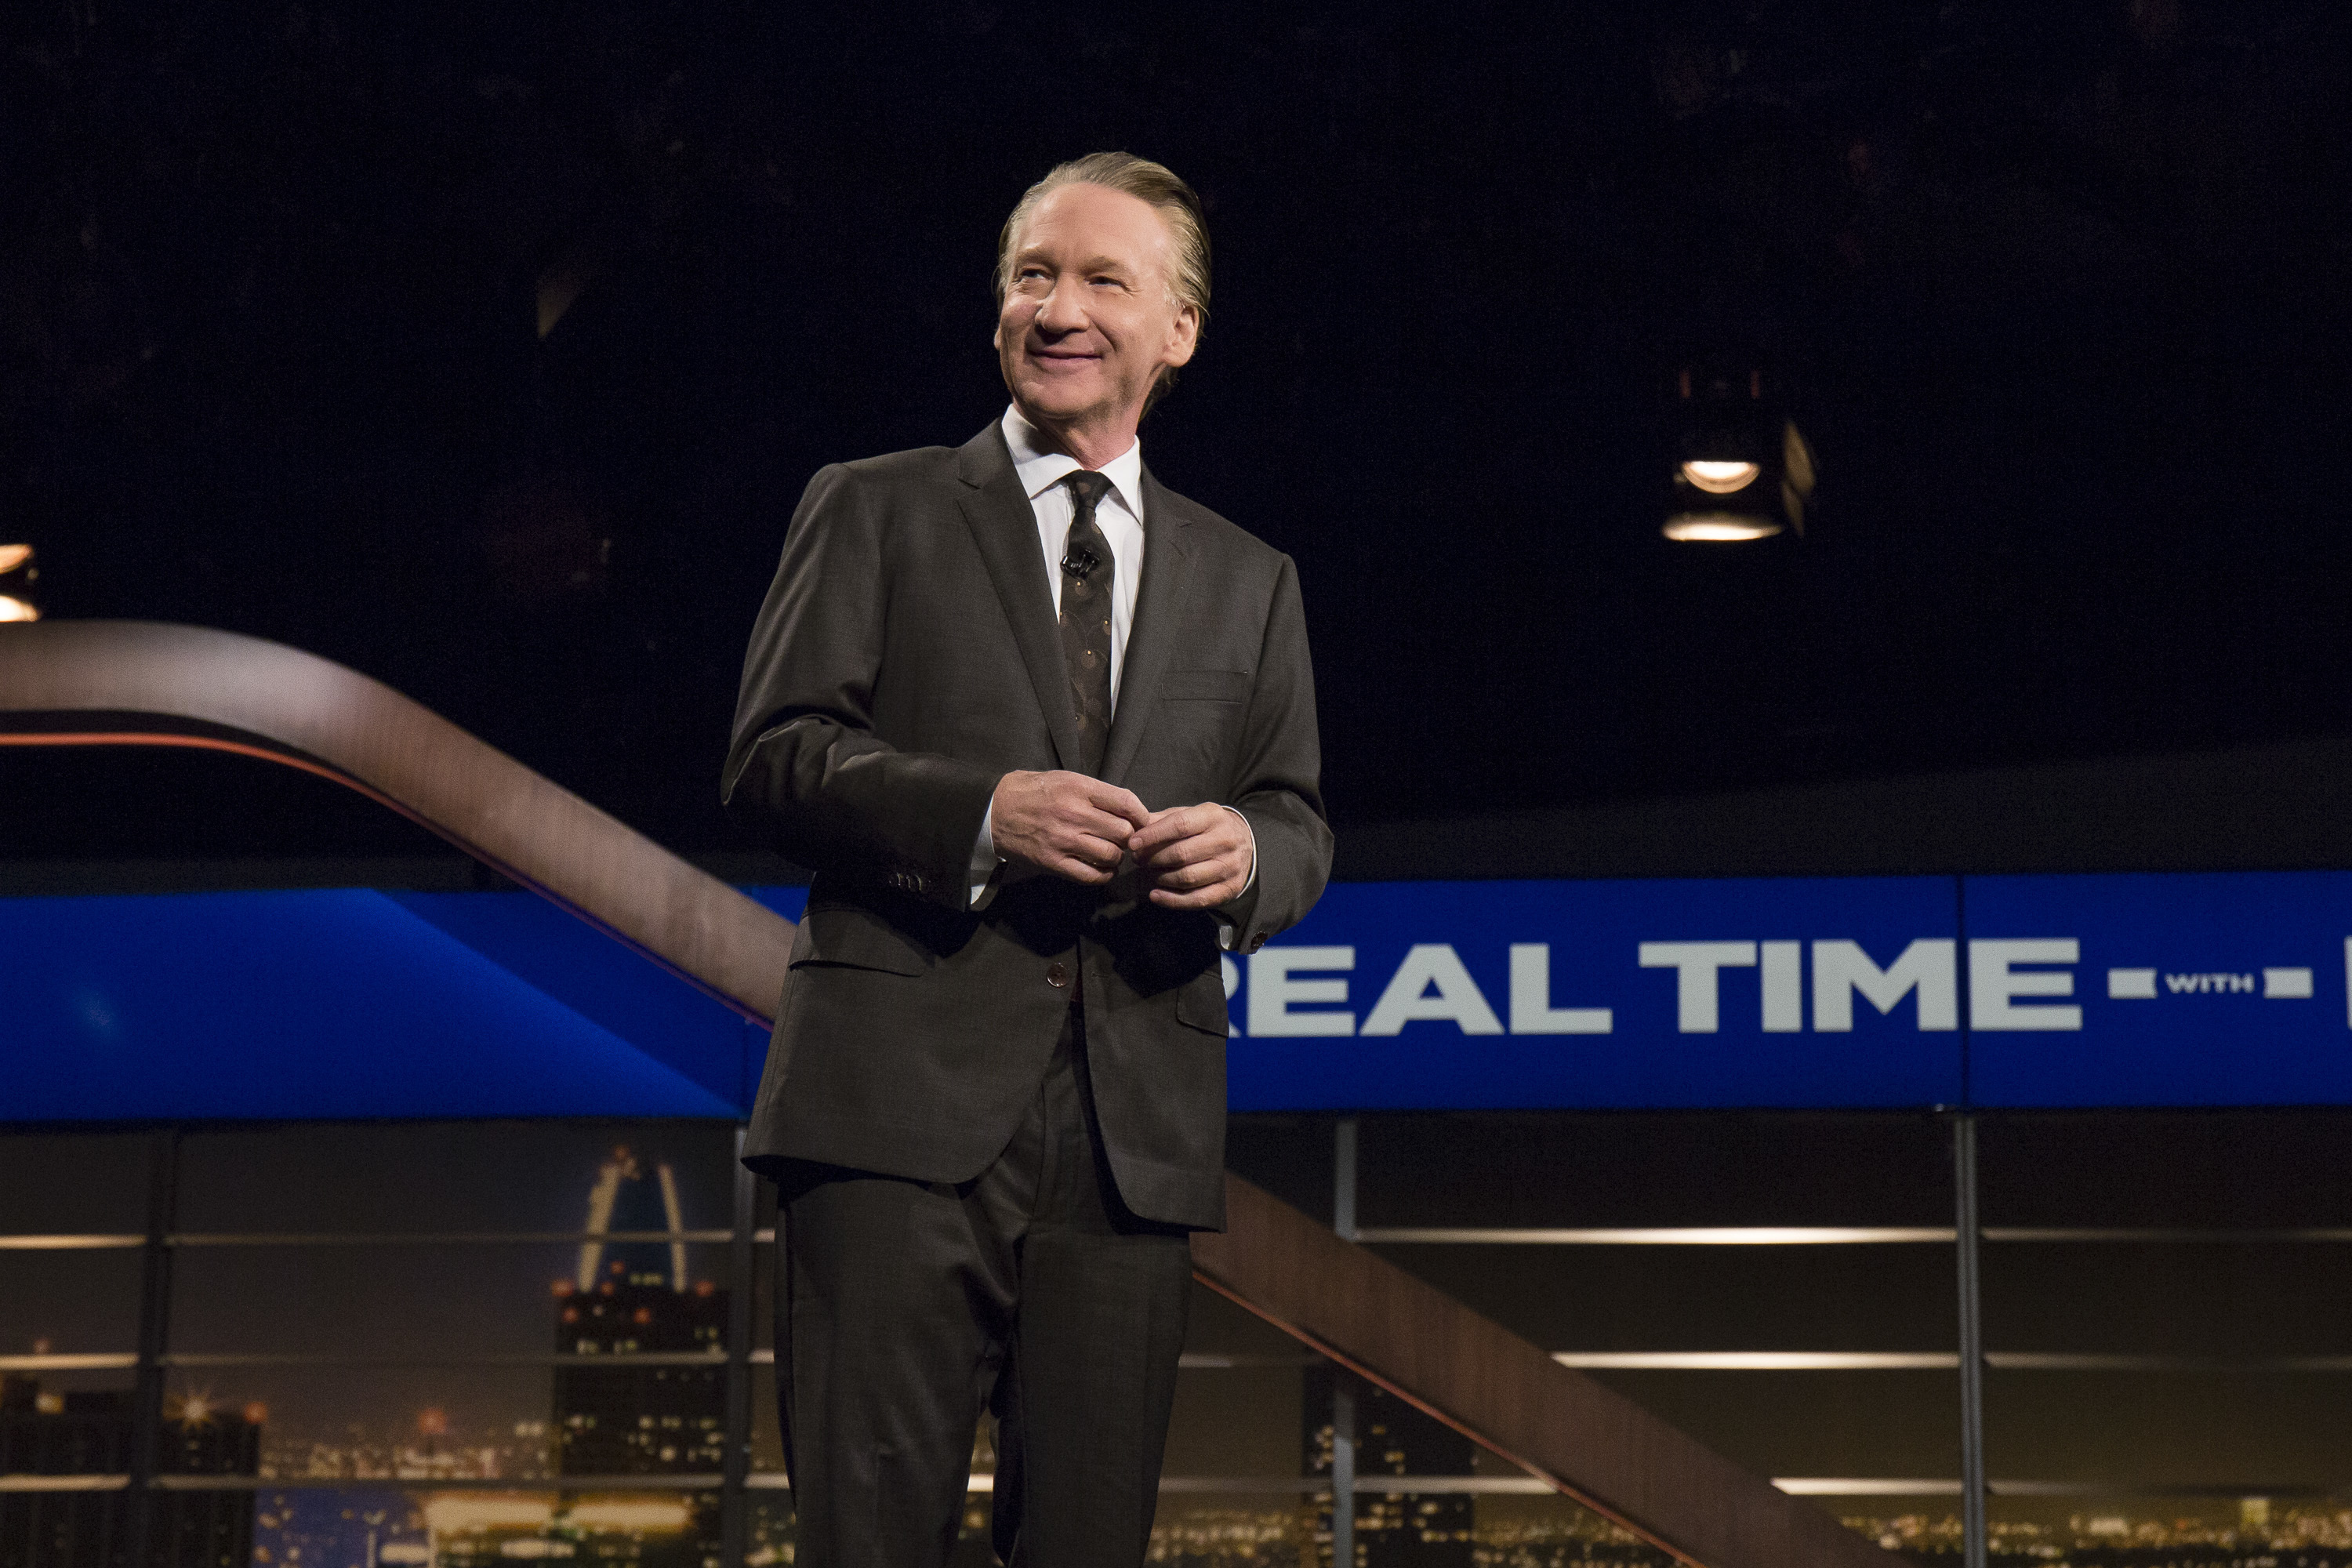 Bill Maher rips Democrats' free college push: 'Nothing is free'